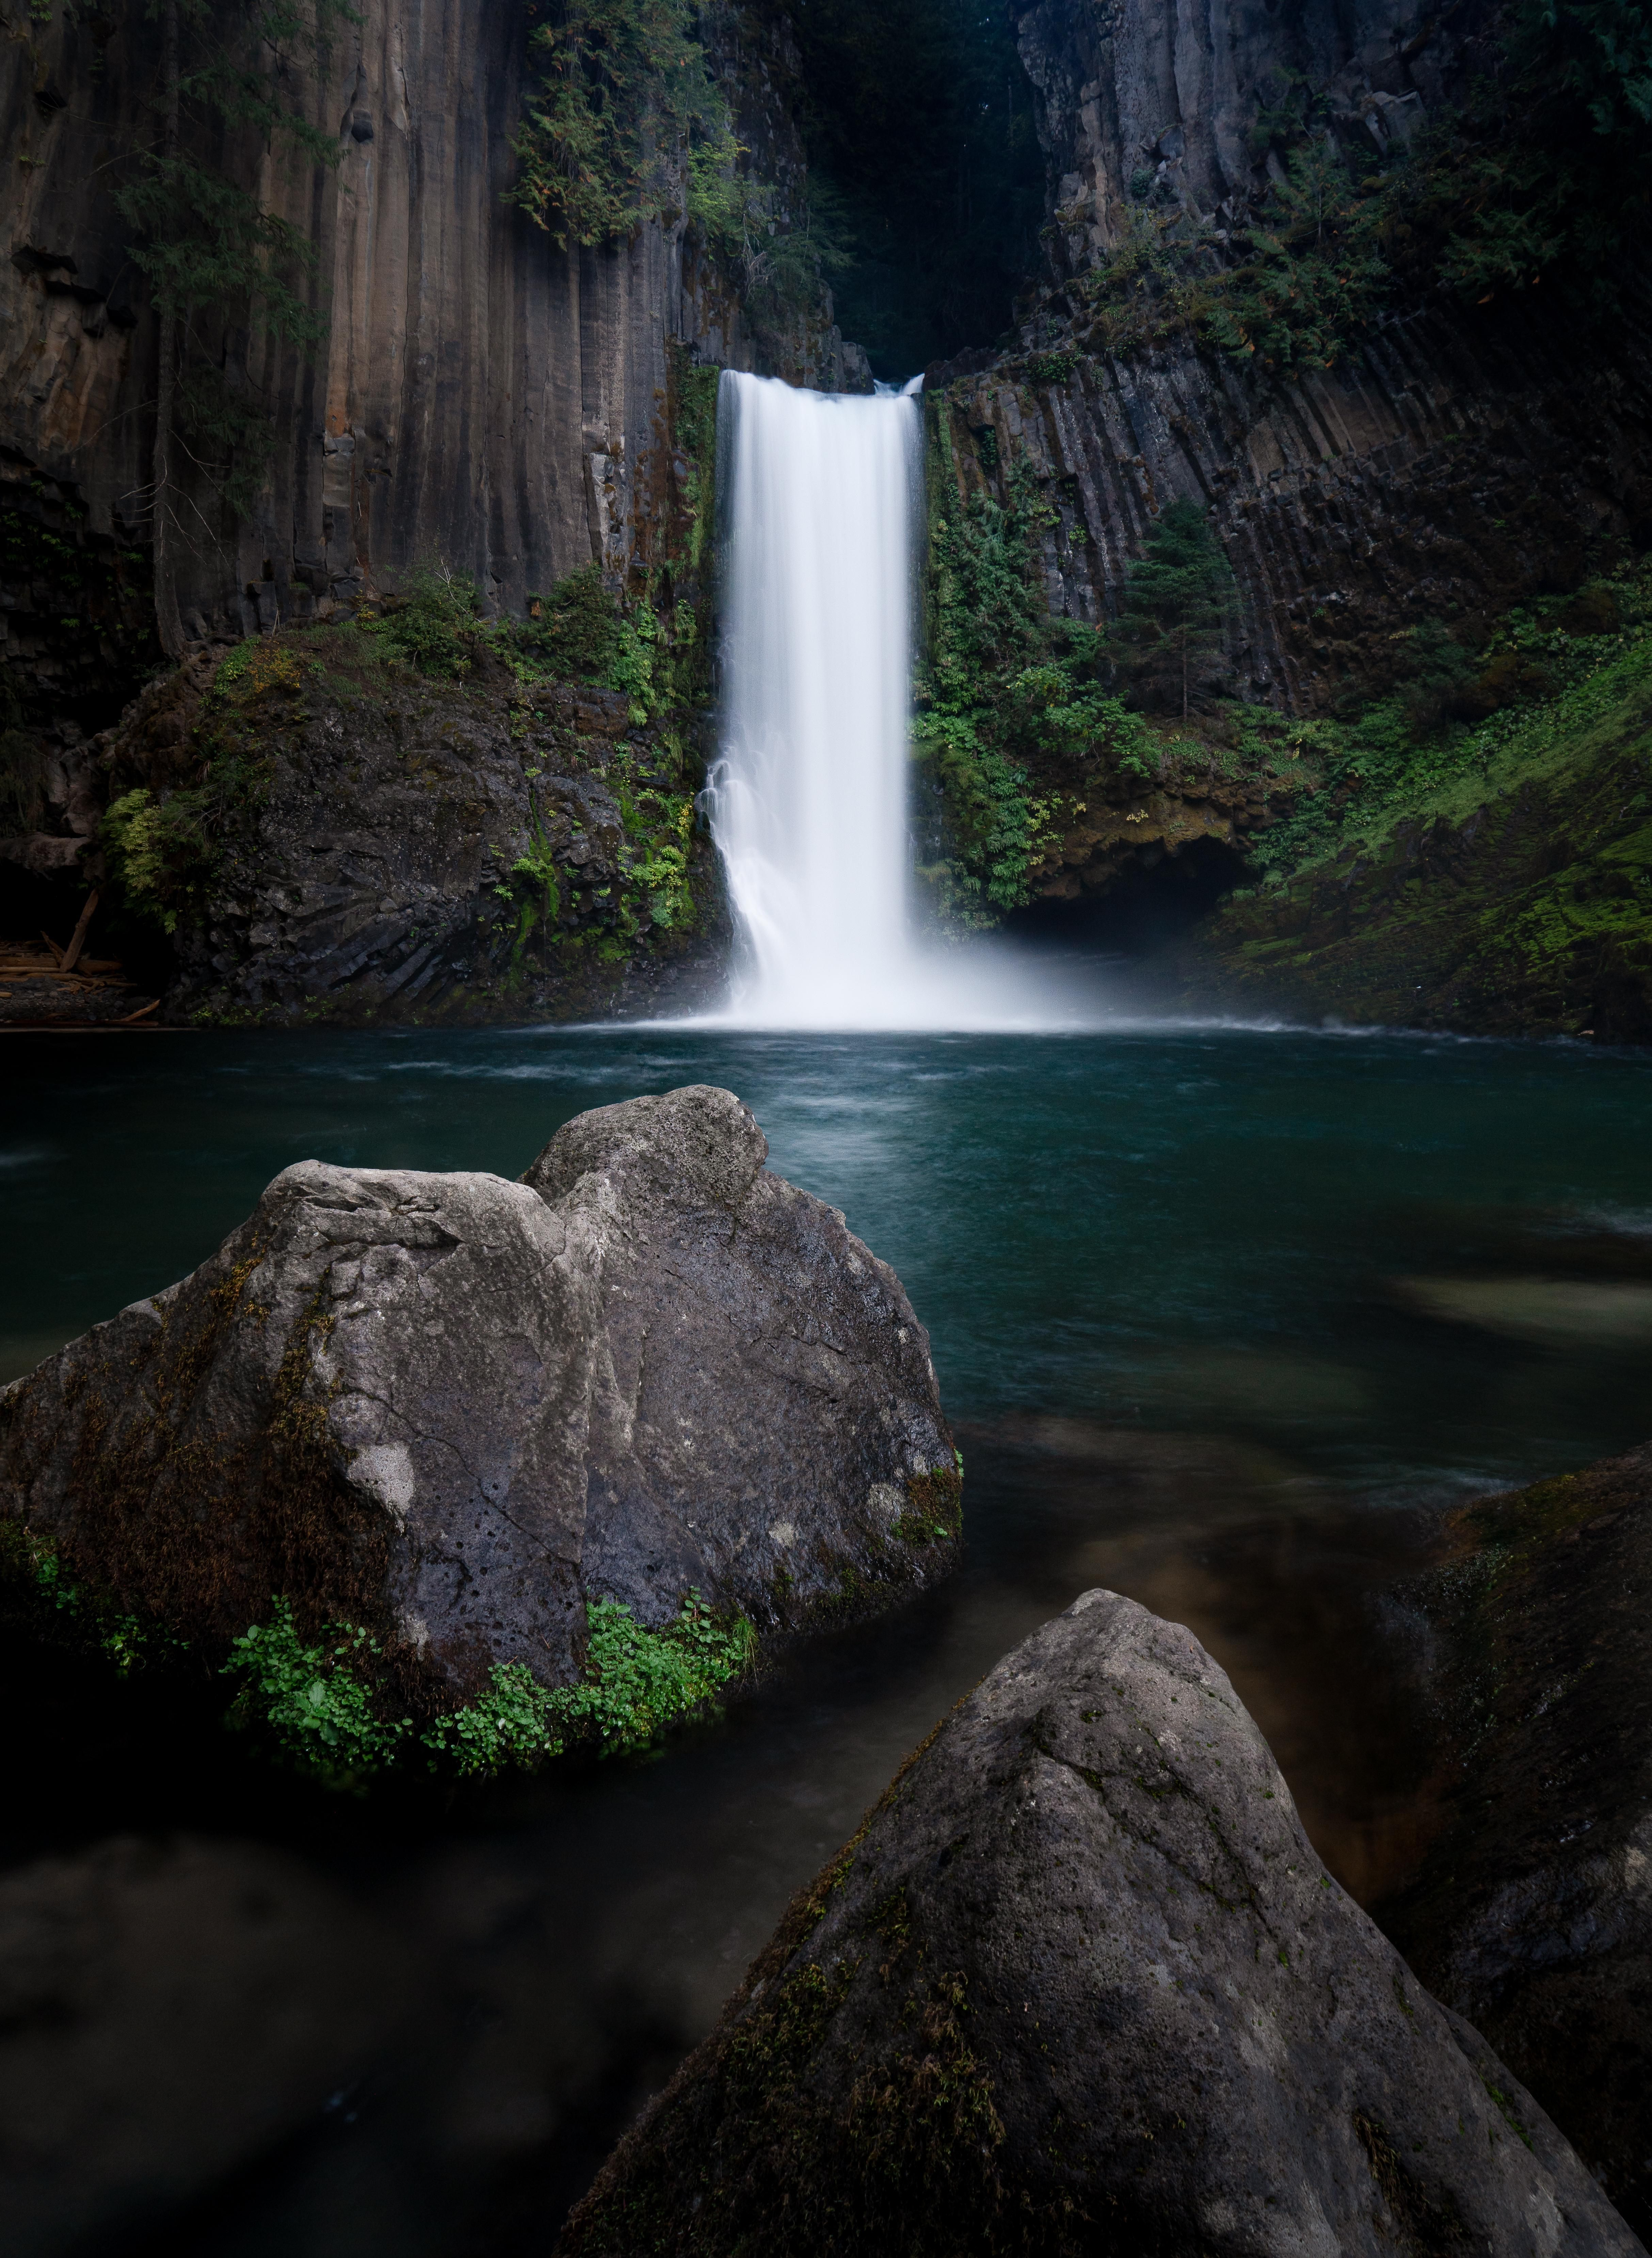 Itap Of A Dark Waterfall Photo Background Editor Wallpaper Photohd Photonew Photo Background Editor Photo Backgrounds Landscape Photographers